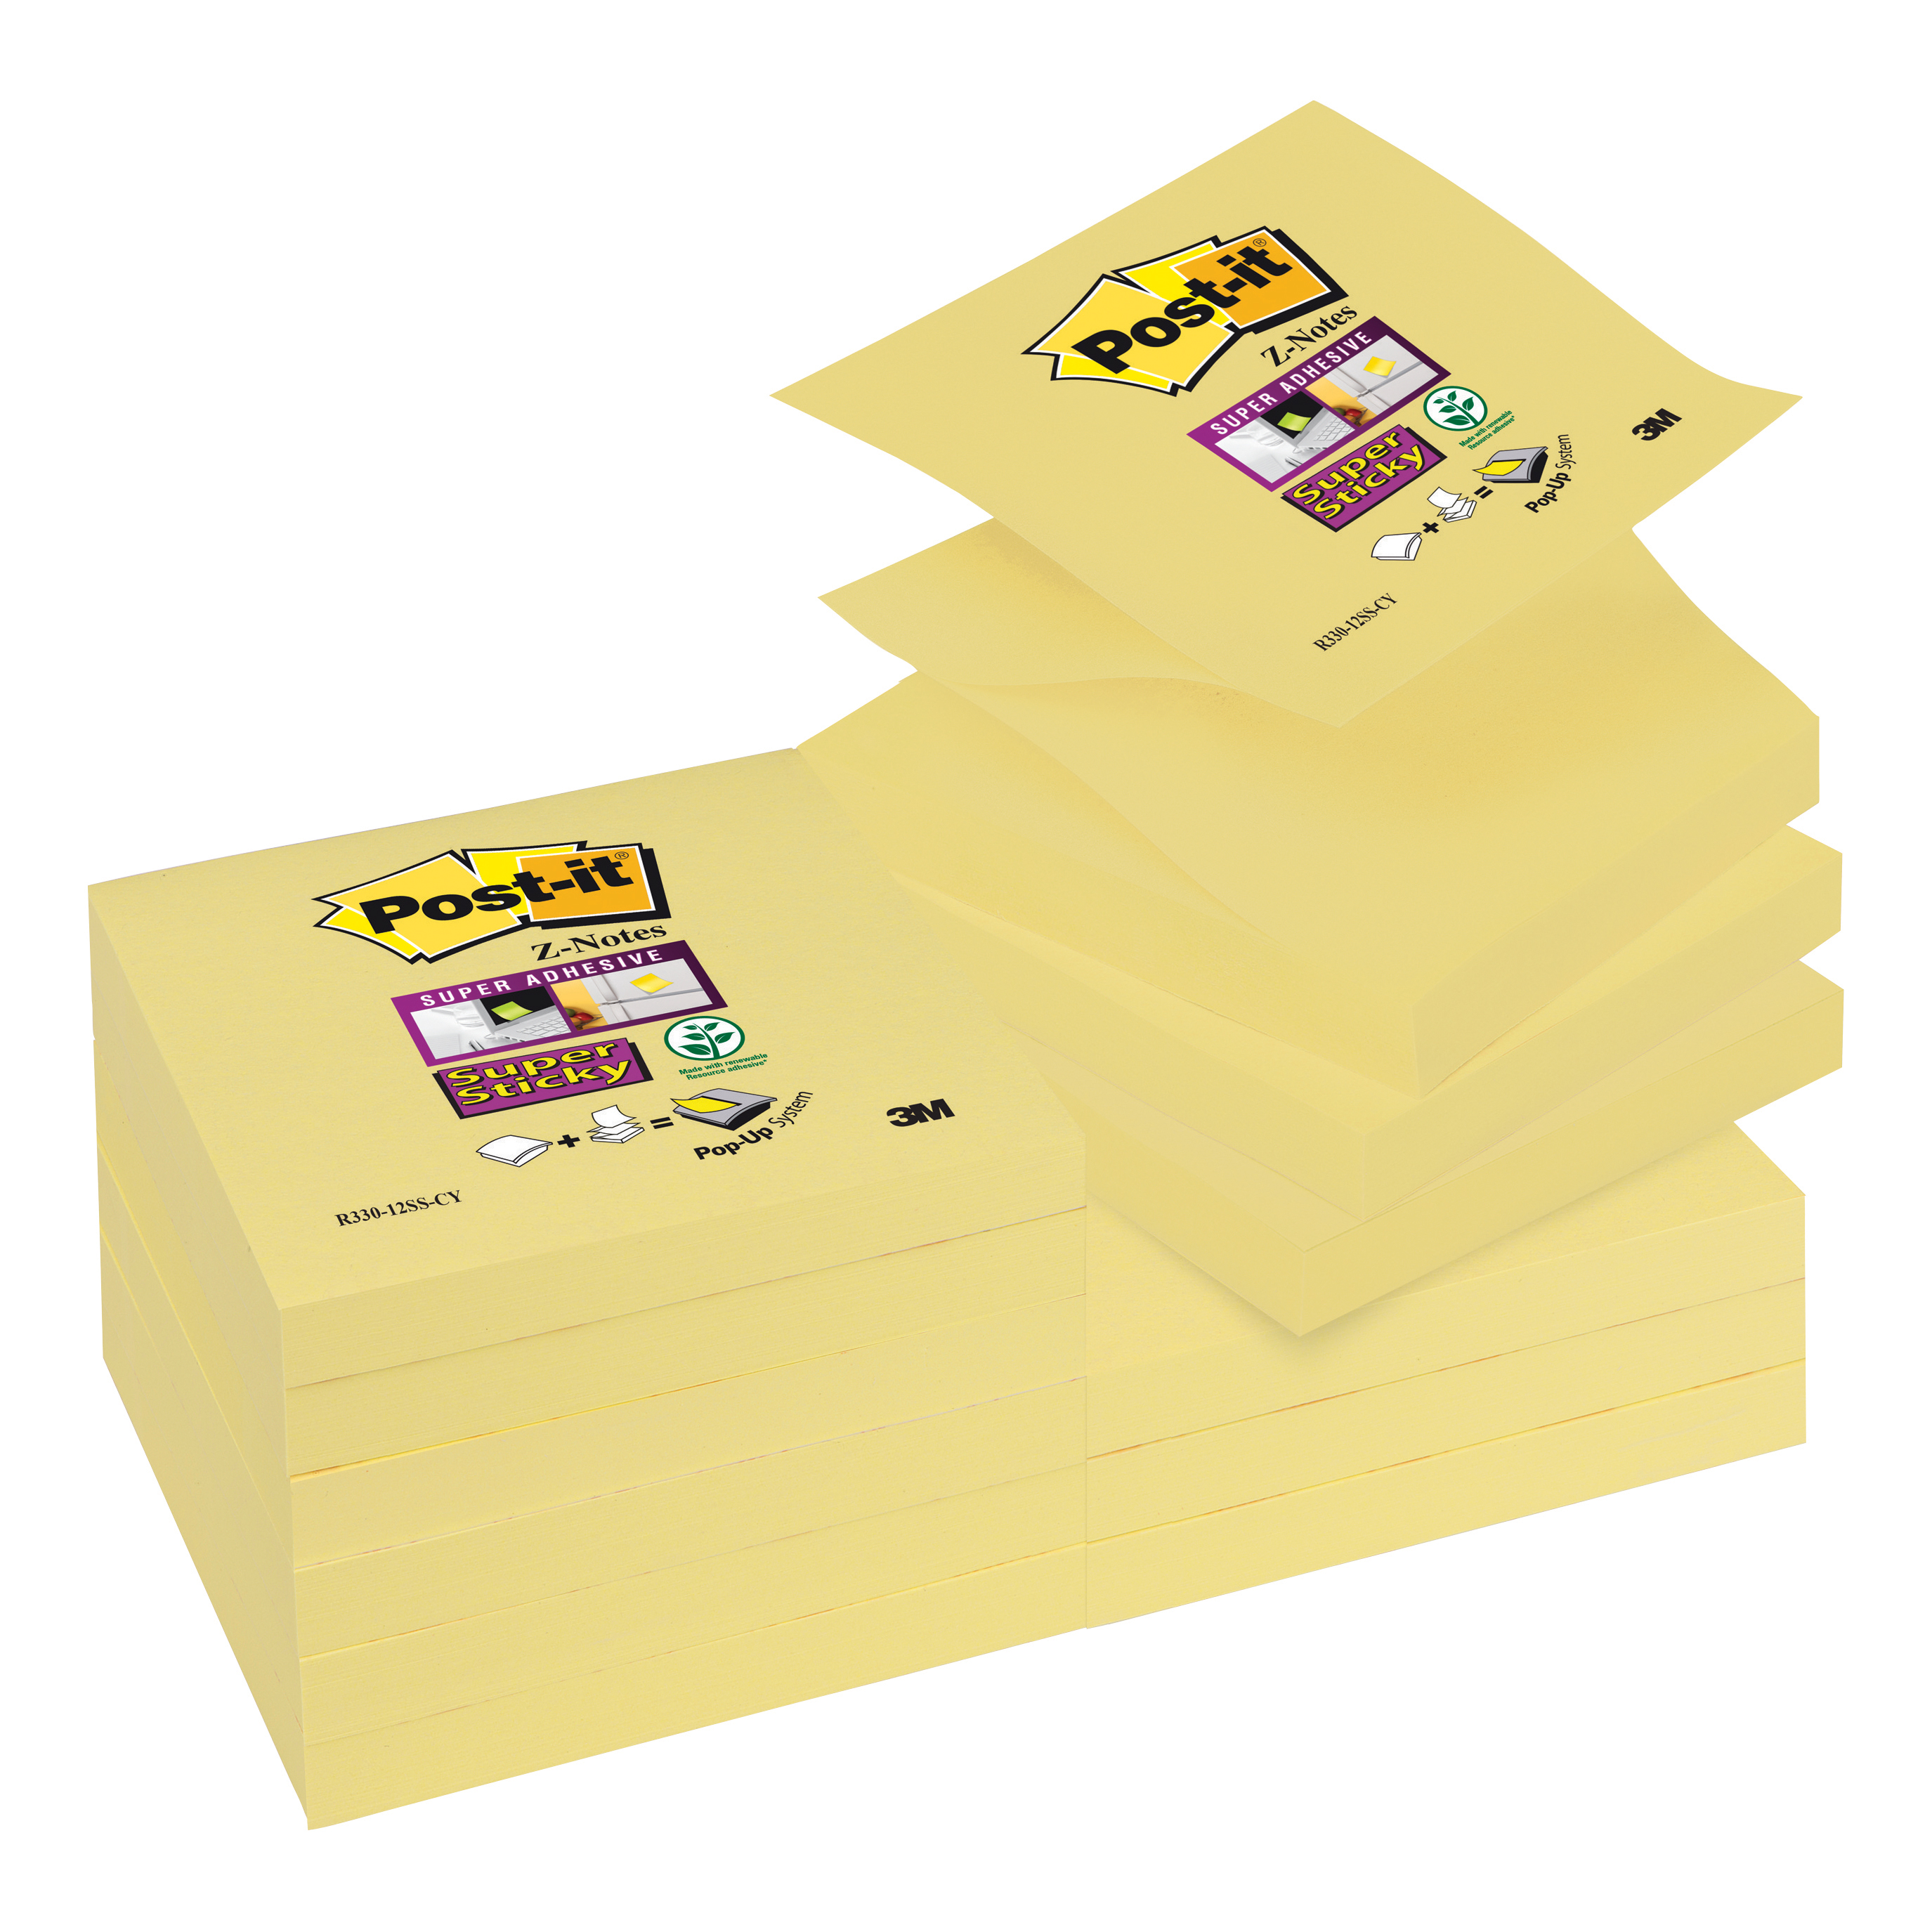 Post-it Super Sticky Z Notes 76x 76mm Canary Yellow Ref R330-12SS-CY-EU Pack 12